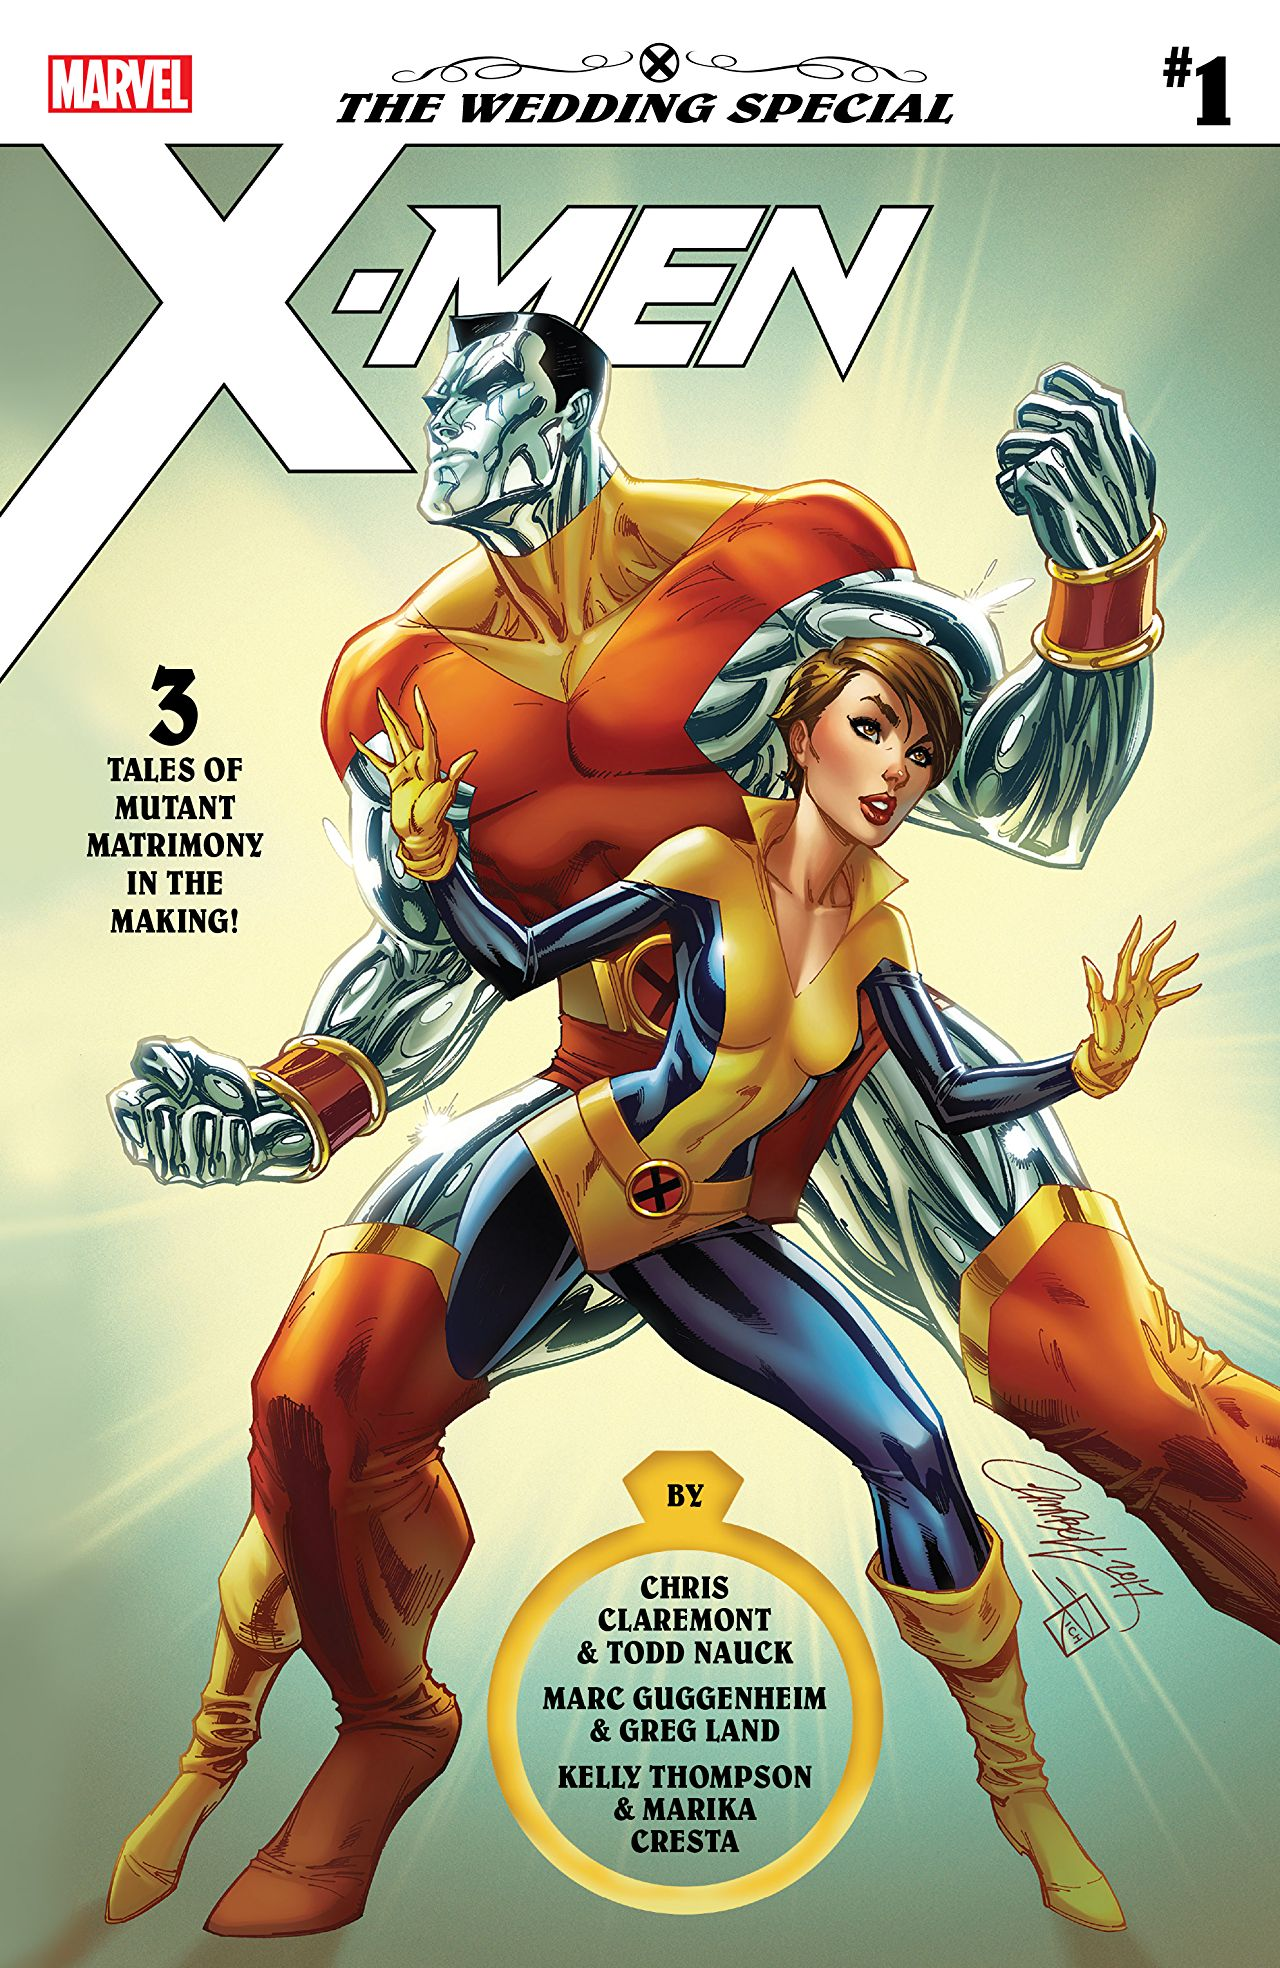 X-Men: The Wedding Special #1 Review